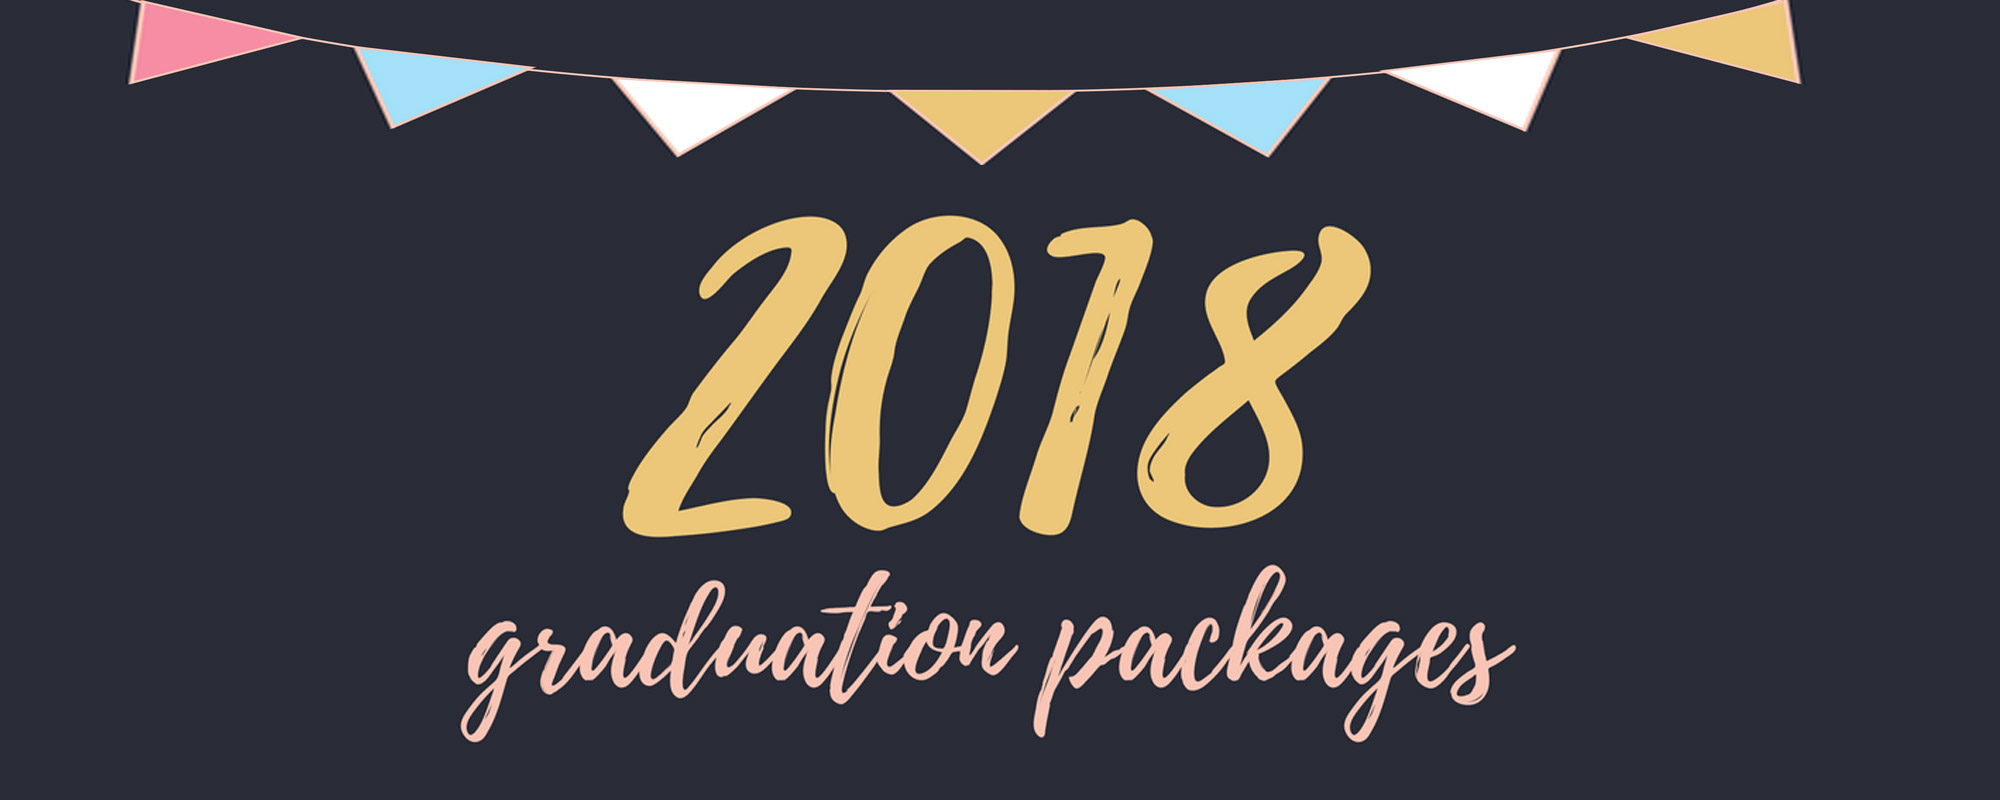 2018 Grad Packages